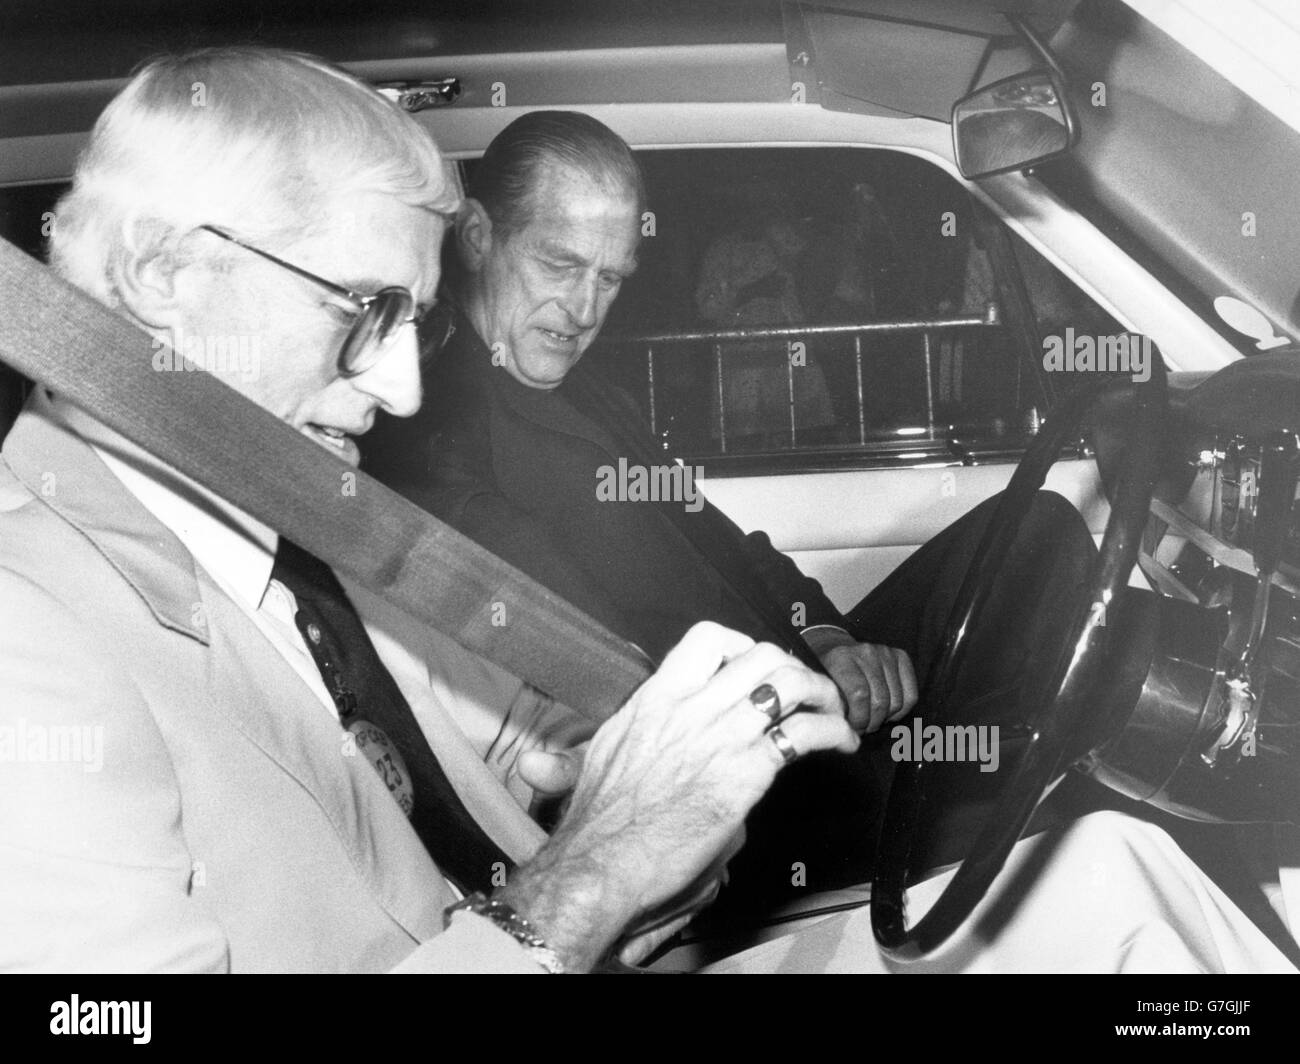 Royalty - Duke of Edinburgh and Jimmy Savile - Stoke Mandeville Hospital Stock Photo